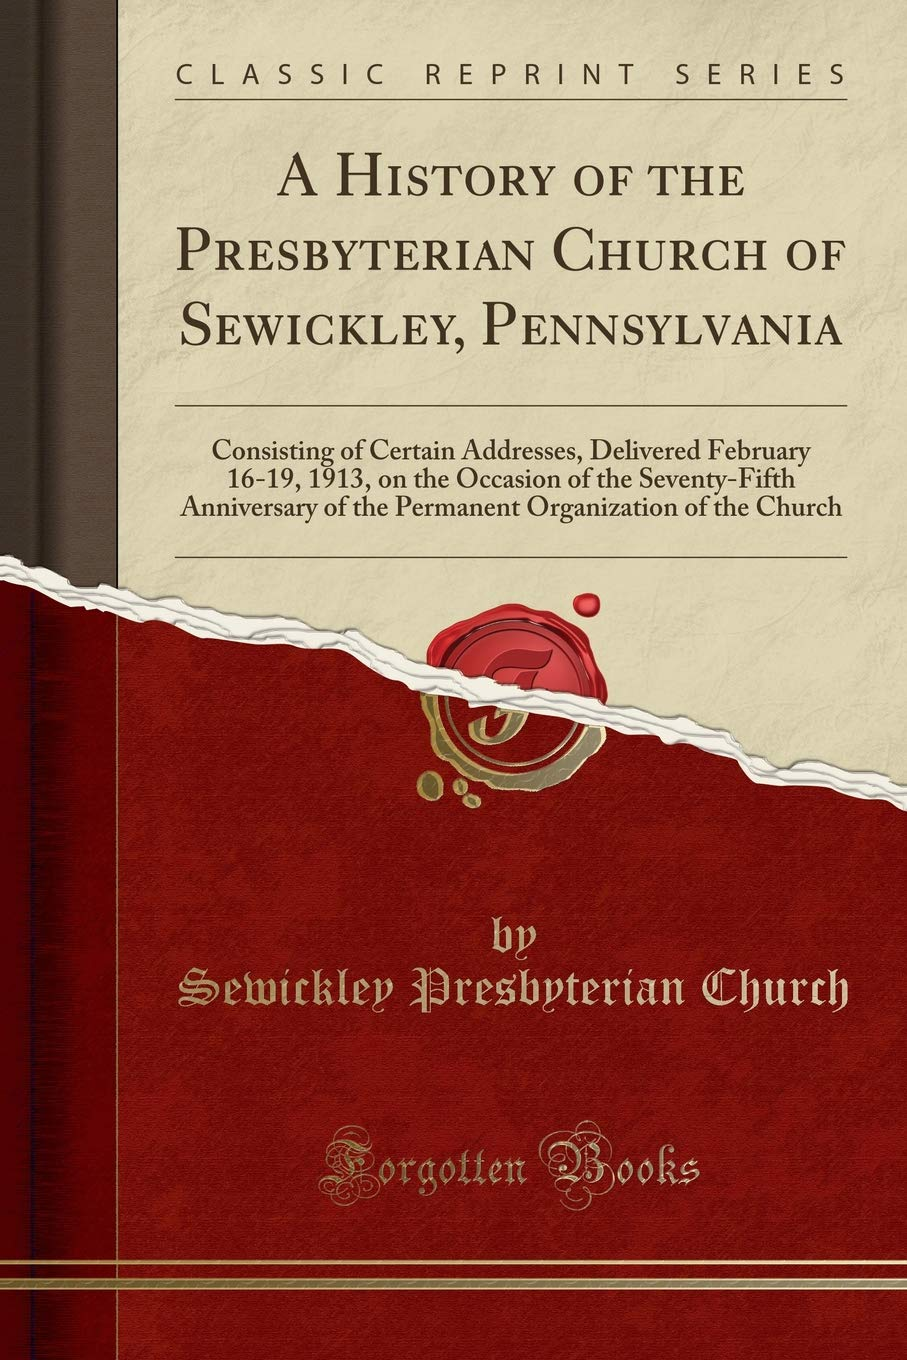 Download A History of the Presbyterian Church of Sewickley, Pennsylvania: Consisting of Certain Addresses, Delivered February 16-19, 1913, on the Occasion of ... Organization of the Church (Classic Reprint) pdf